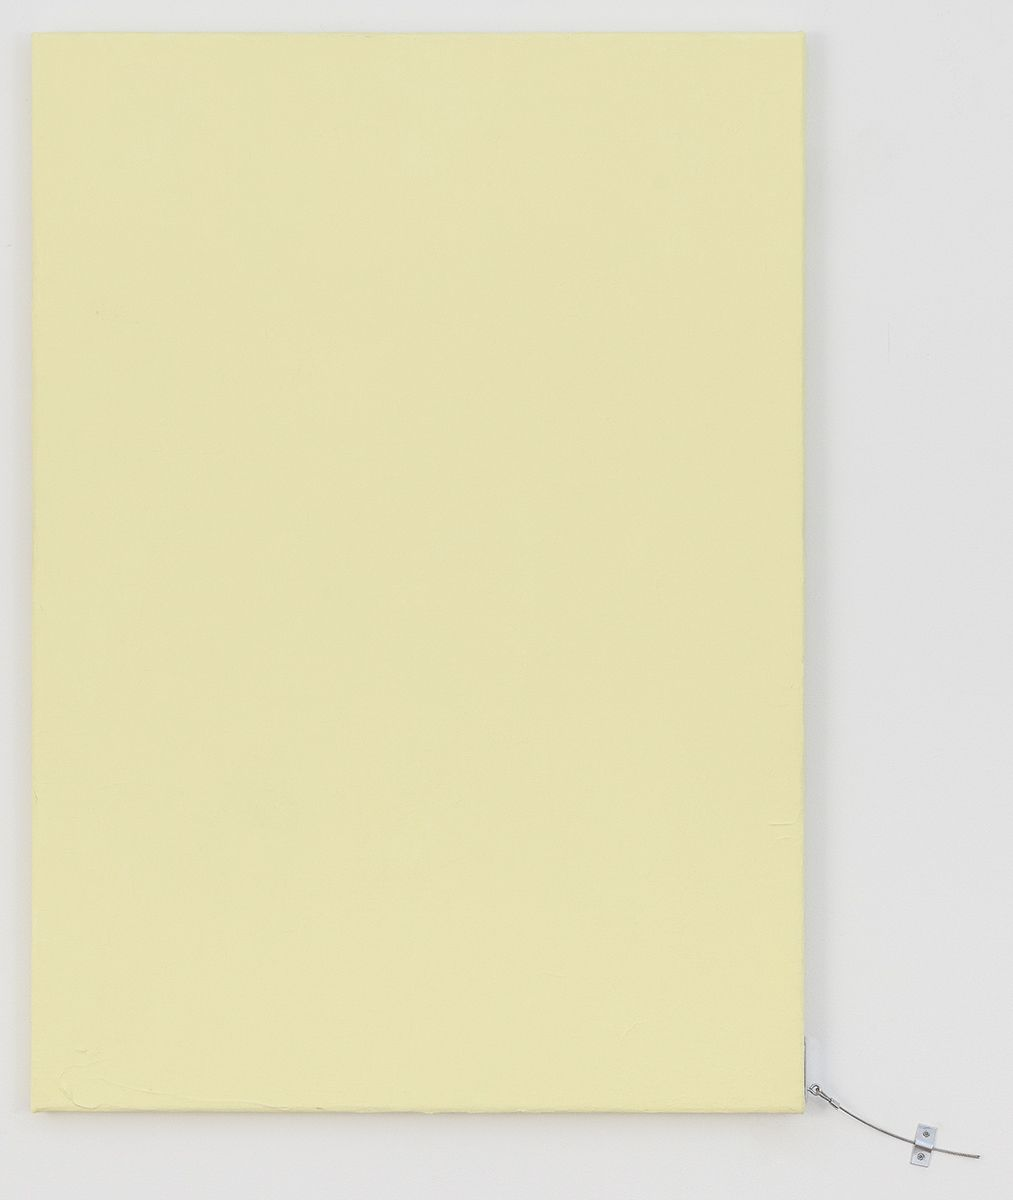 Monika Baer Untitled, 2018 Acrylic, quartz on canvas, aluminum 34 2/3 x 24 3/4 inches (88 x 63 cm)